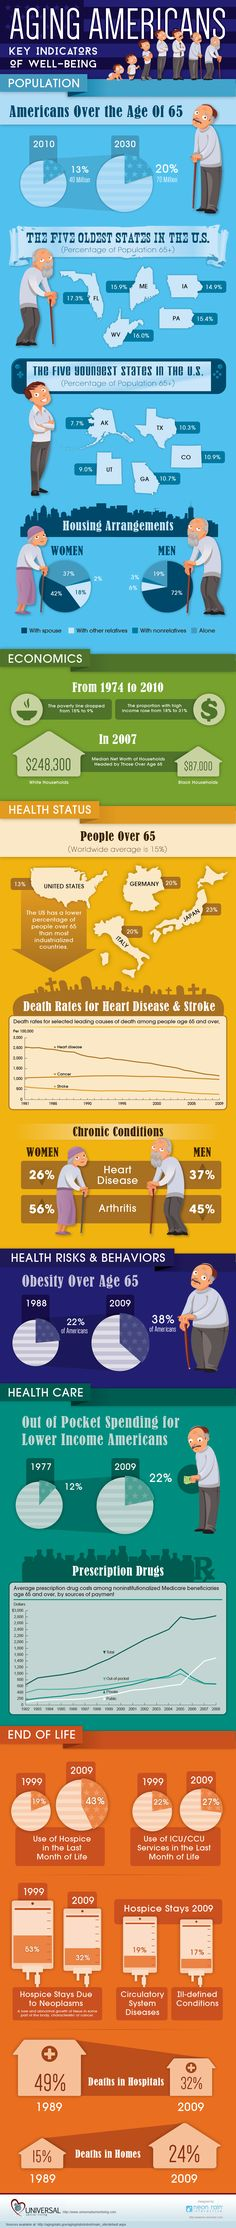 Aging Americans - Key Indicators of Well Being #infographic #Health #Economy